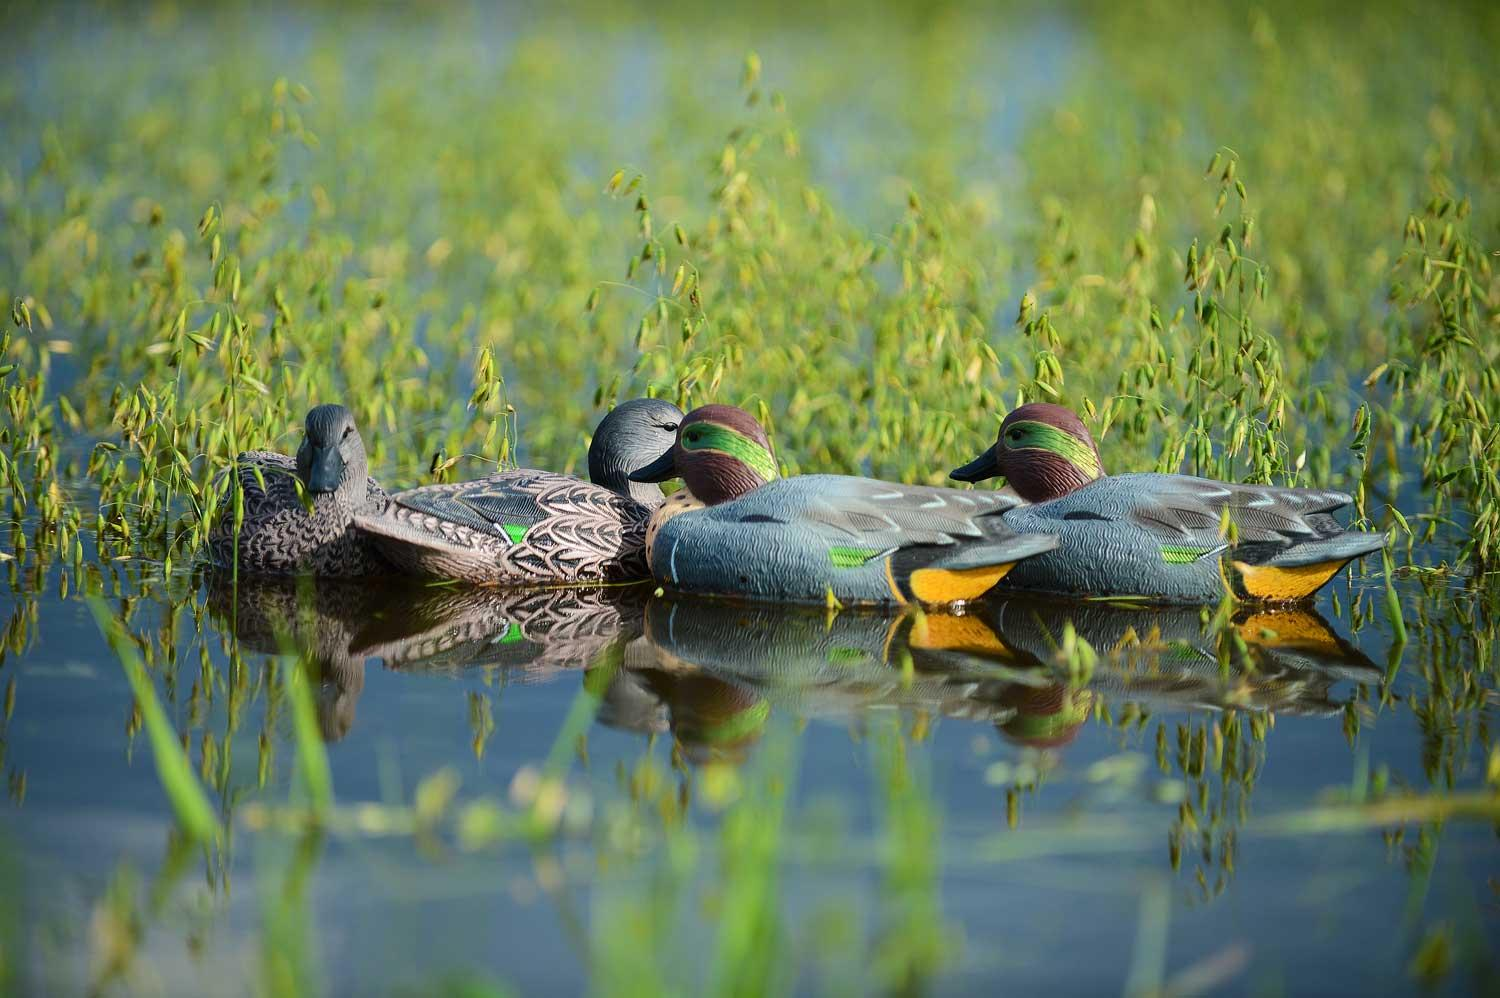 Avery GHG Life-Sized Floating Green-Winged Teal Decoys, 6 Pack_10.jpg